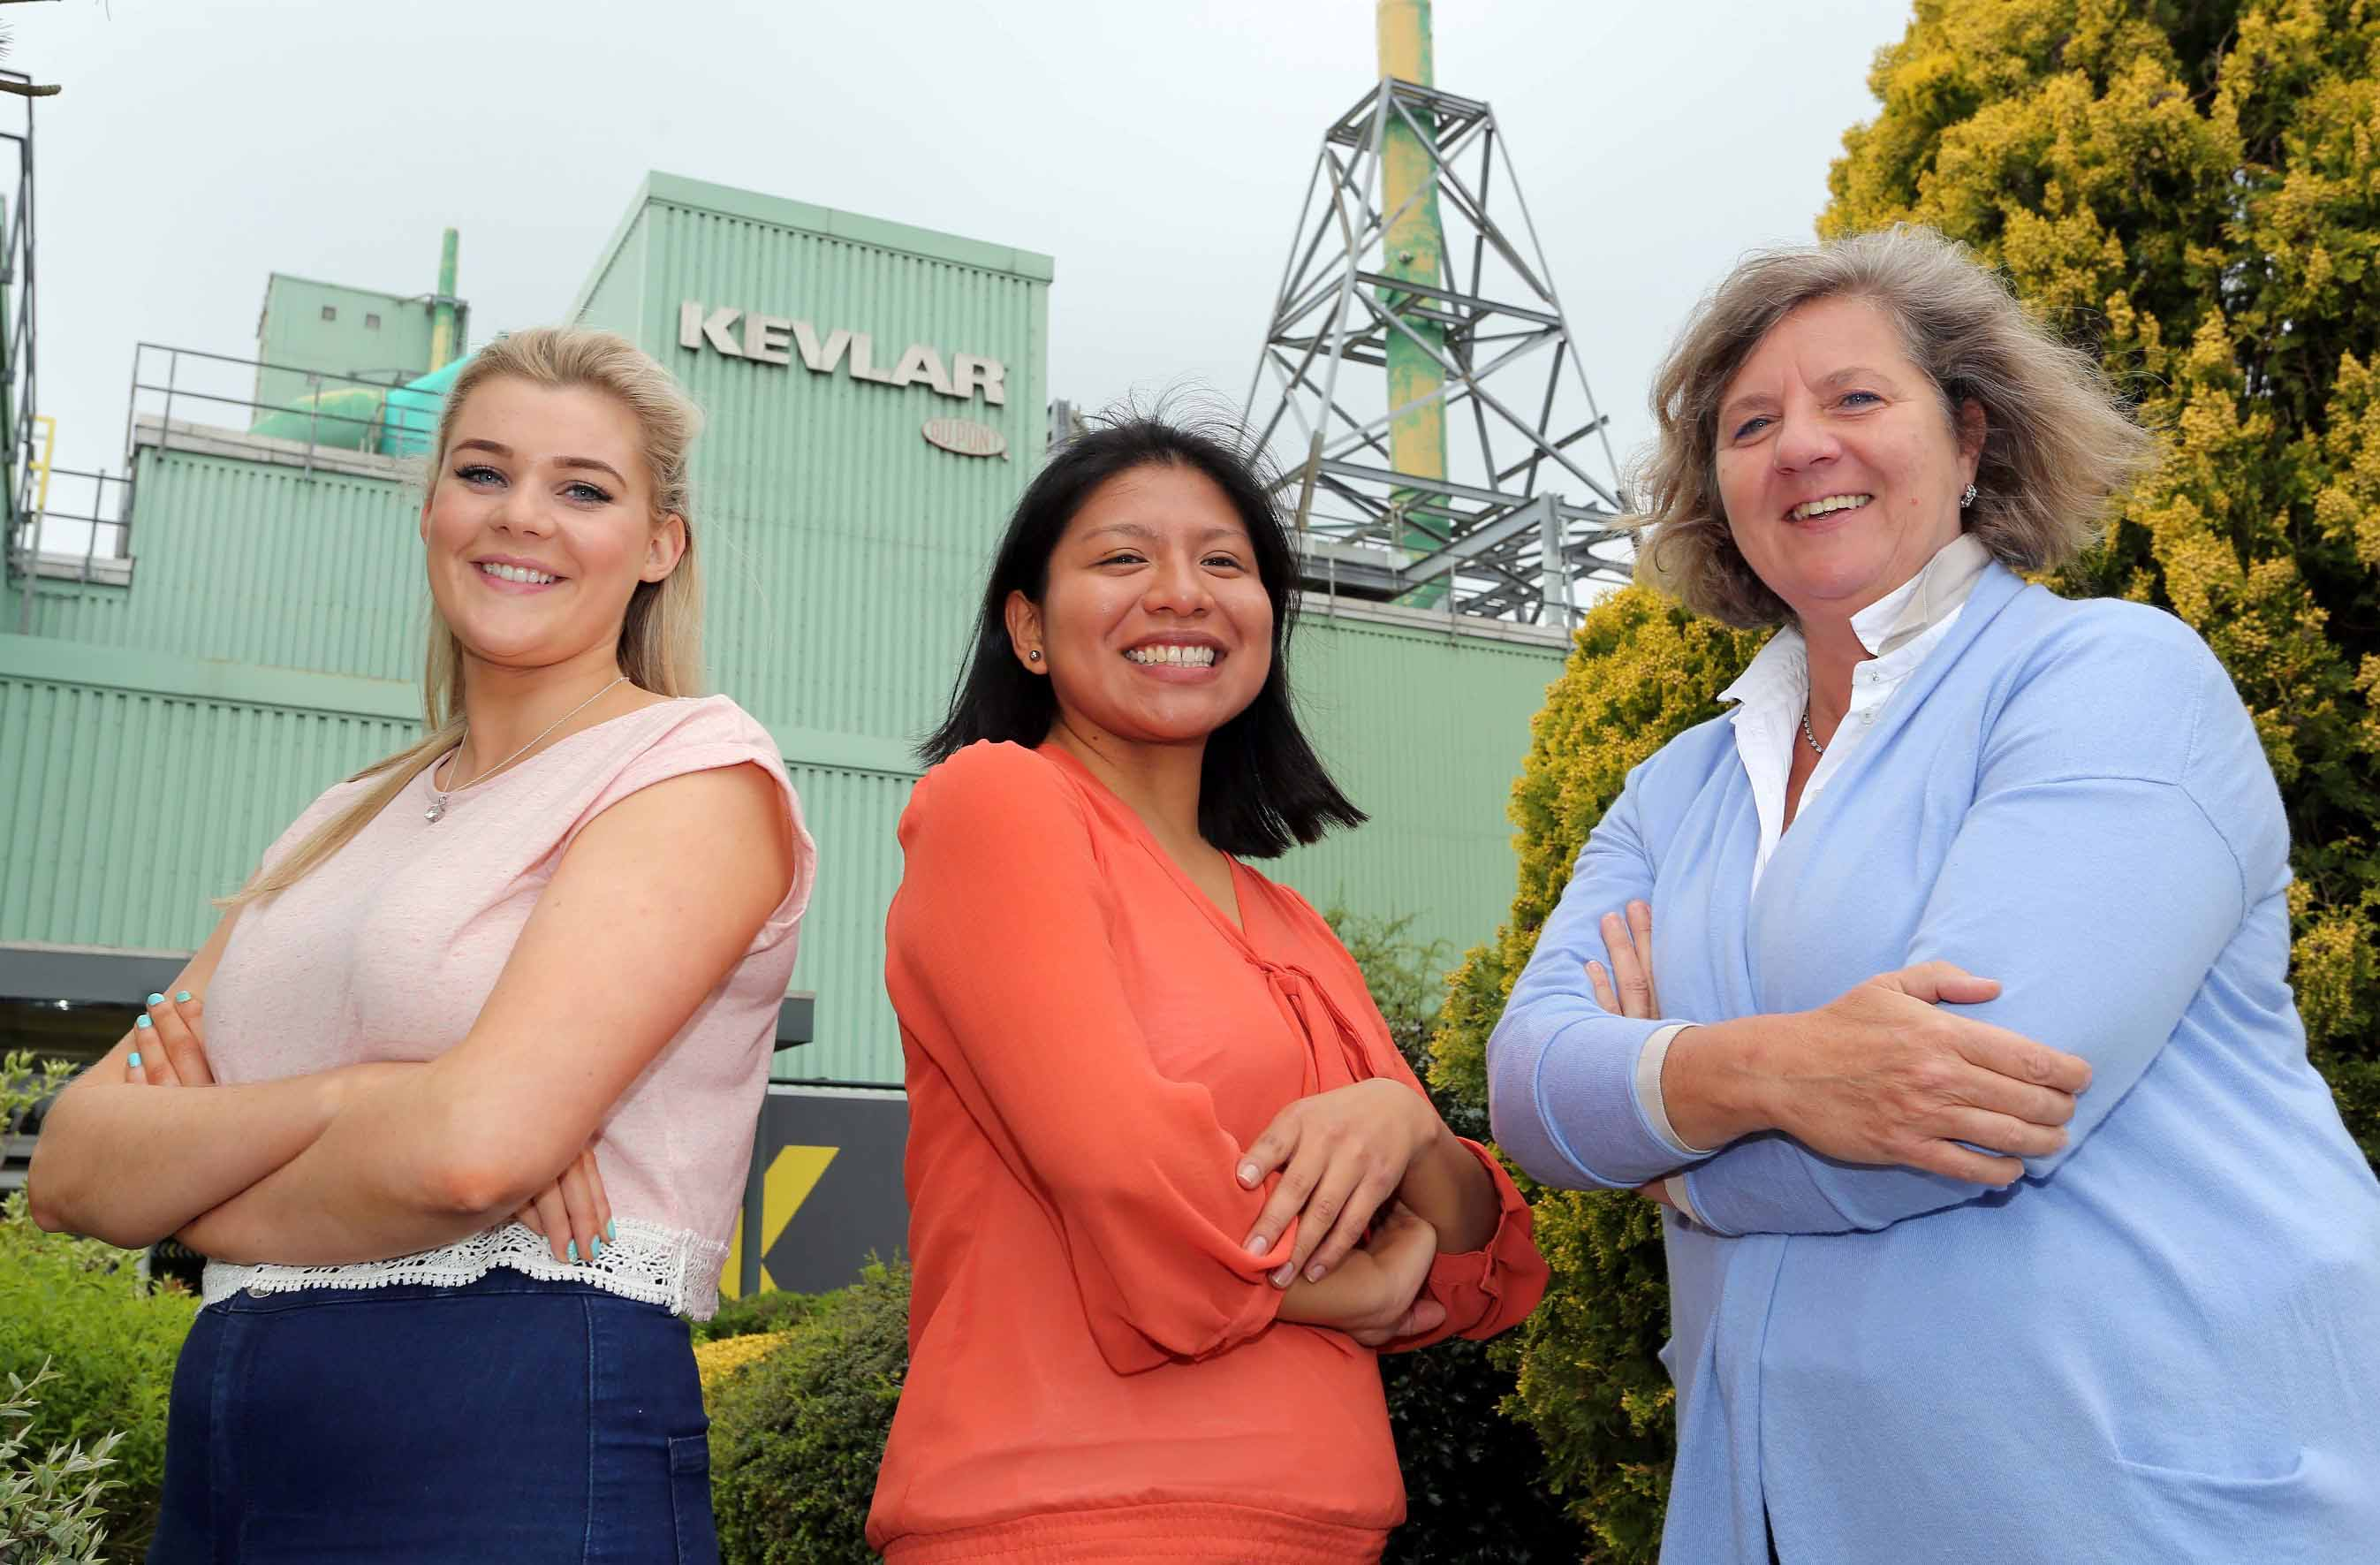 women engineering successful careers at dupont derry daily today is national women in engineering day and three female engineers from dupont l